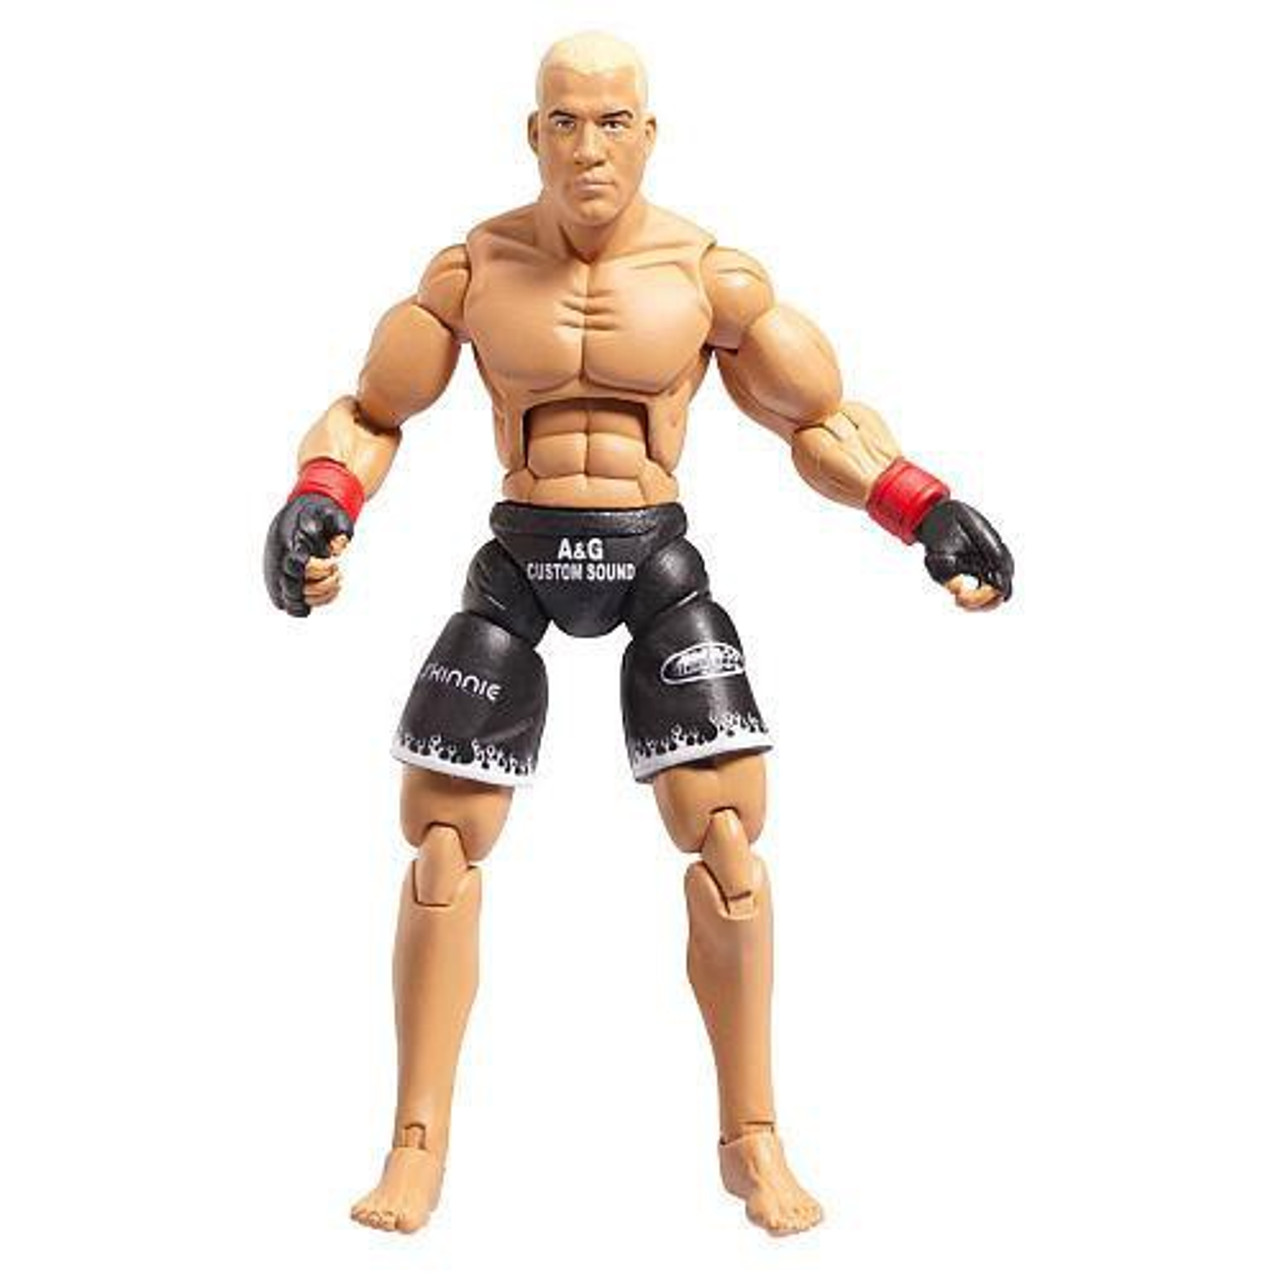 Ufc Bring Build Octagon Series 2 Tito Ortiz Exclusive 3.75 Action Figure Jakks Pacific